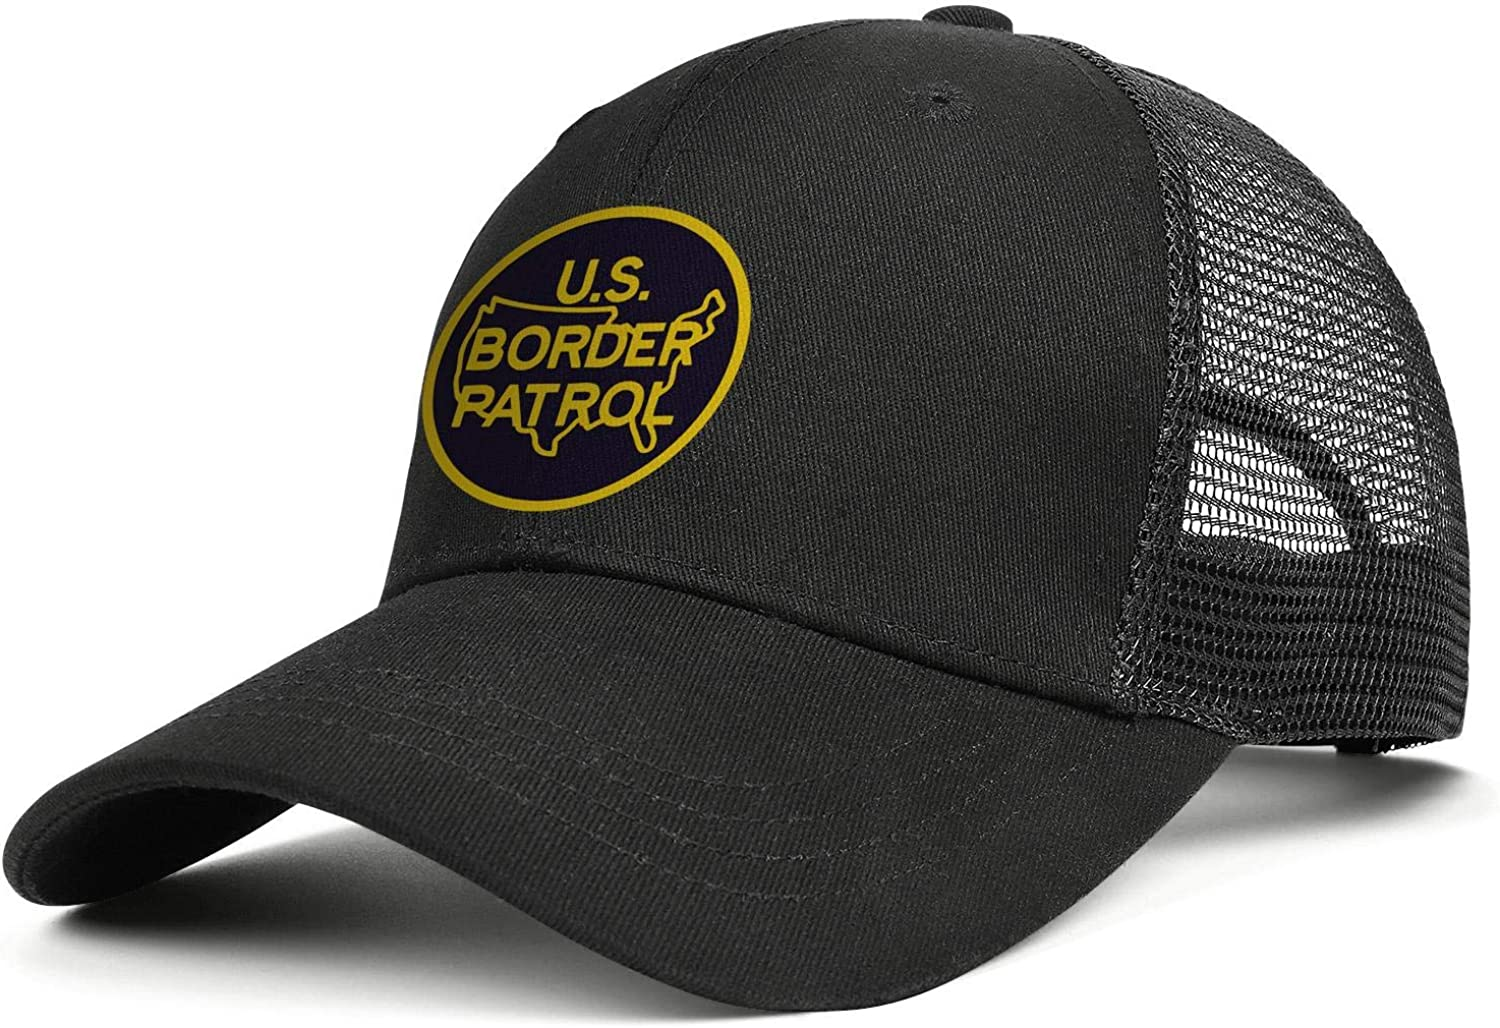 Rkouquhuaqi Us Border Patrol State Map Ba Cotton Adjustable Limited price sale Ranking TOP18 Flag